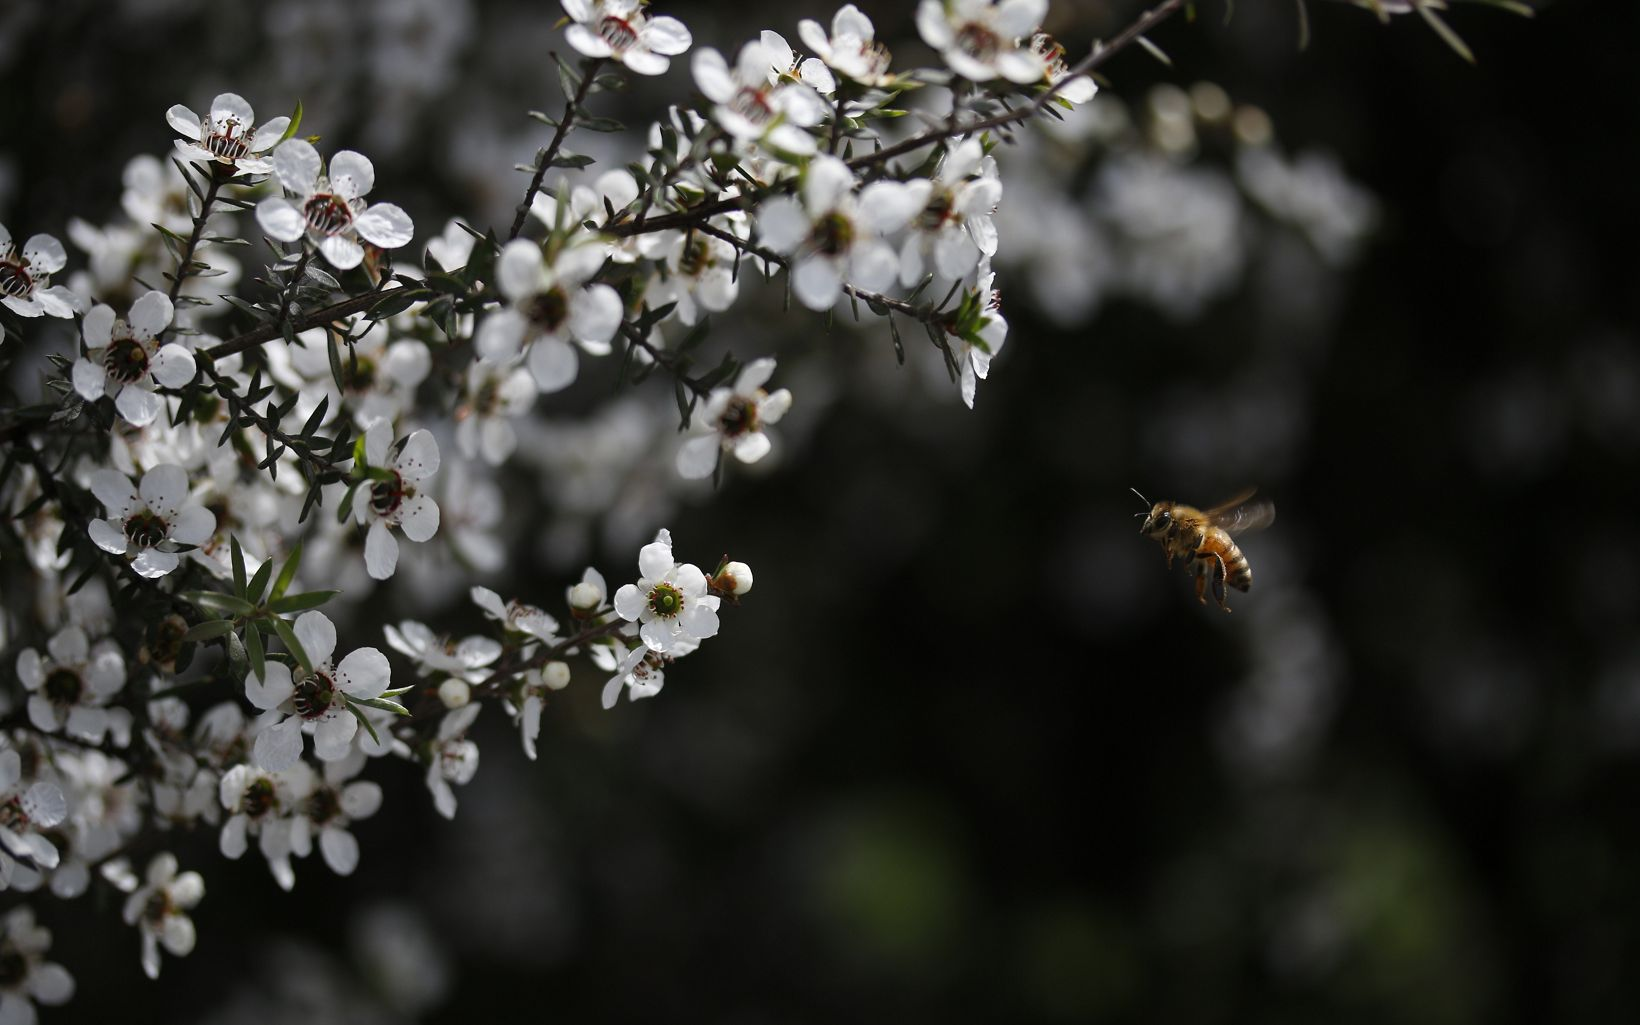 The Manuka flower, native to New Zealand, blooms just 2-6 weeks per year.